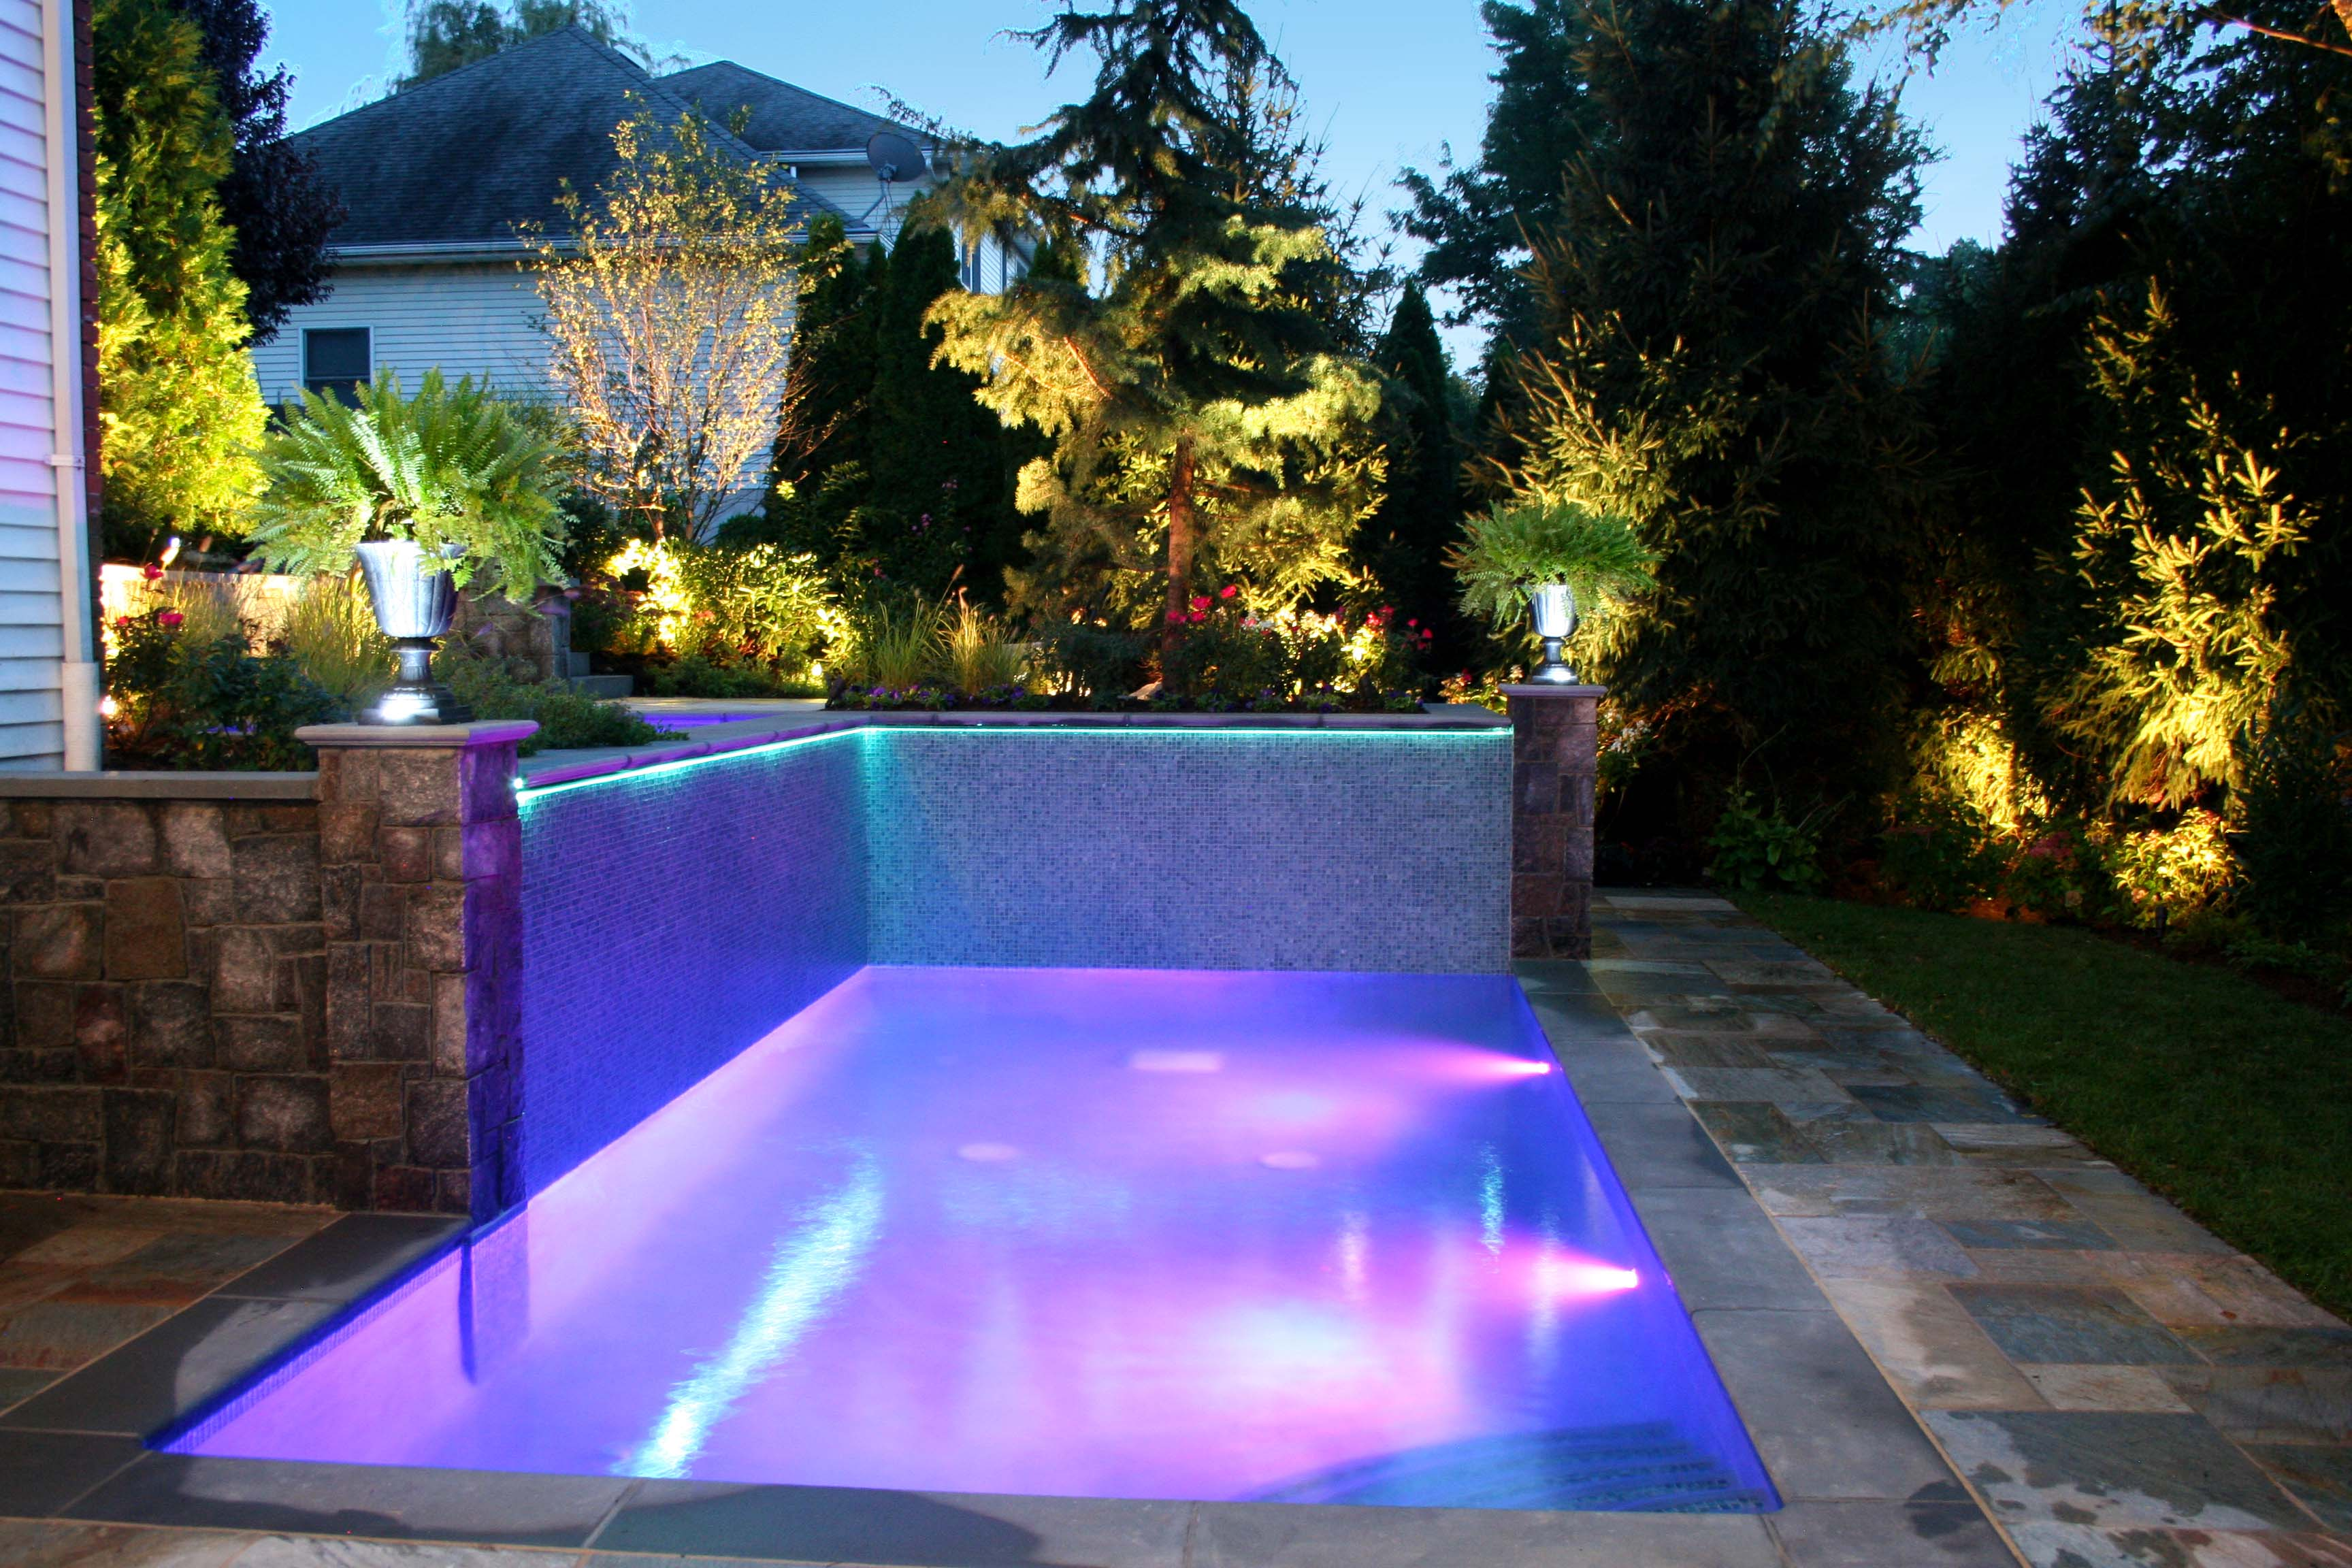 Glass tile swimming pool designs earn new jersey based cipriano custom swimming pools - Swimming pool designs ...